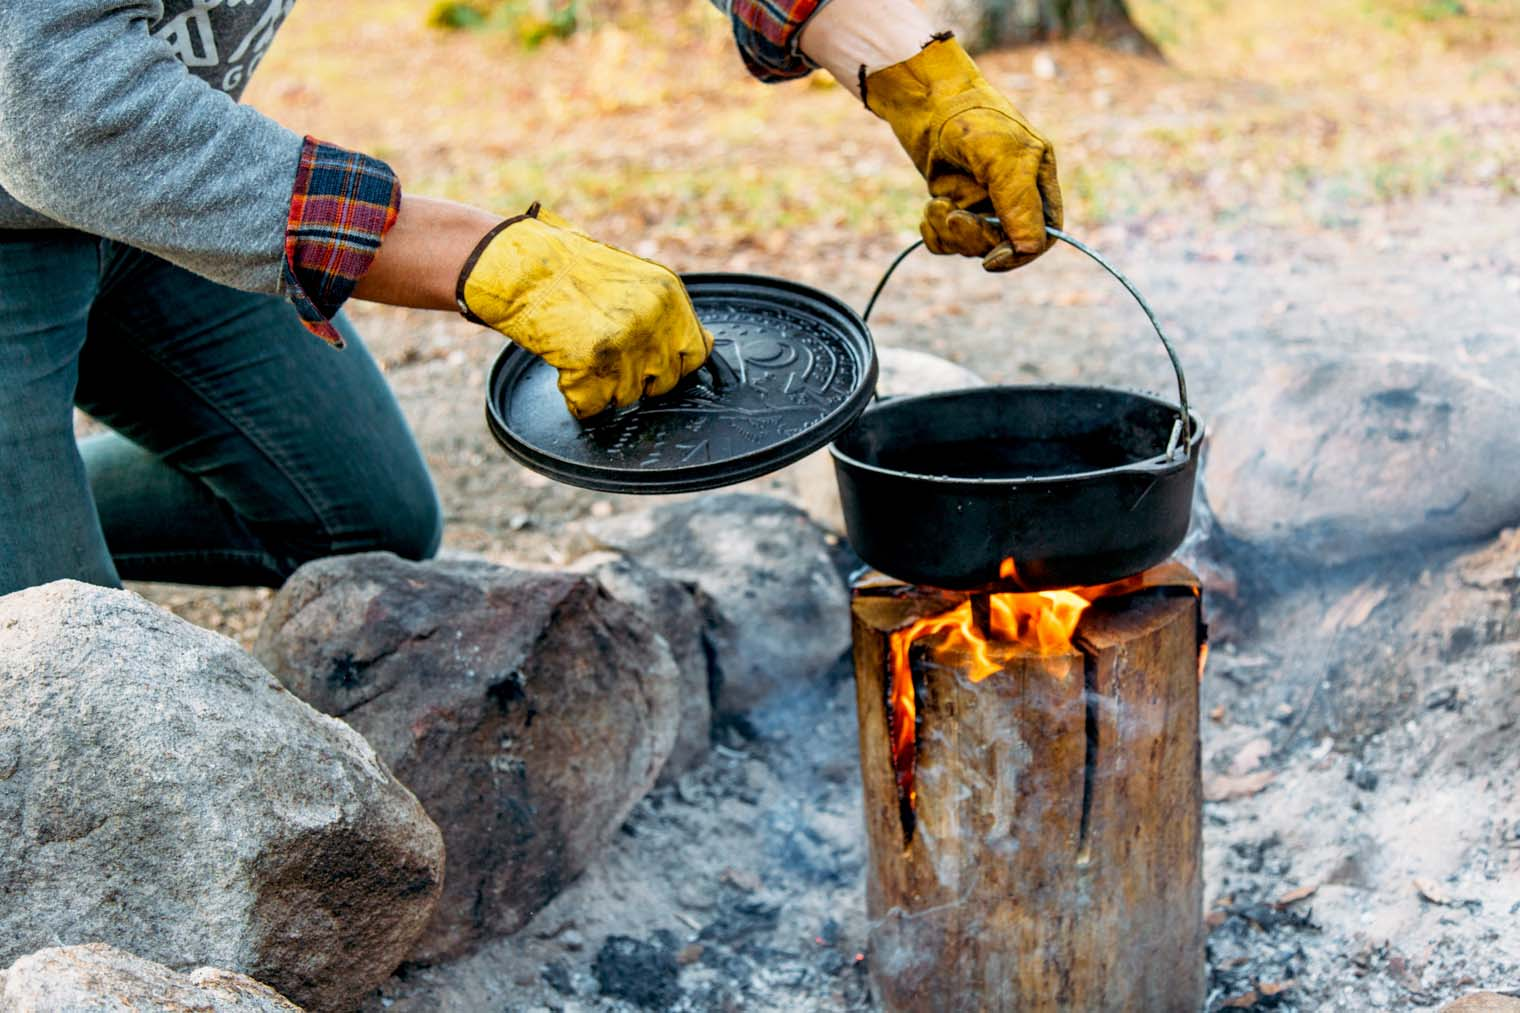 Learn to make a Swedish Torch with or without a chainsaw. Perfect for camping or backyard bonfires!